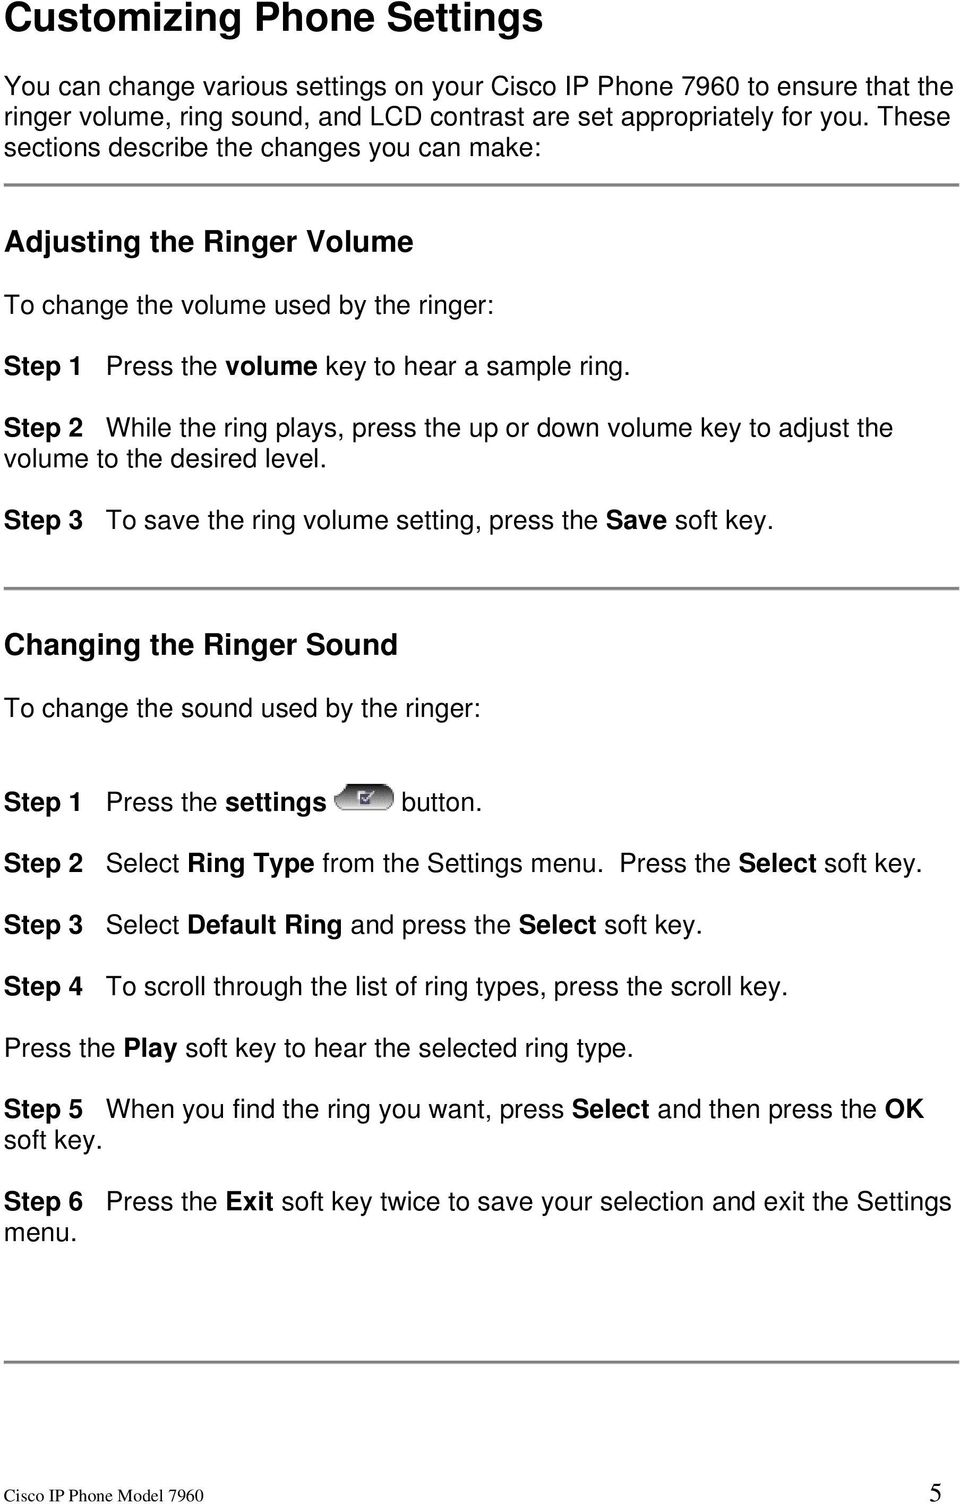 Step 2 While the ring plays, press the up or down volume key to adjust the volume to the desired level. Step 3 To save the ring volume setting, press the Save soft key.